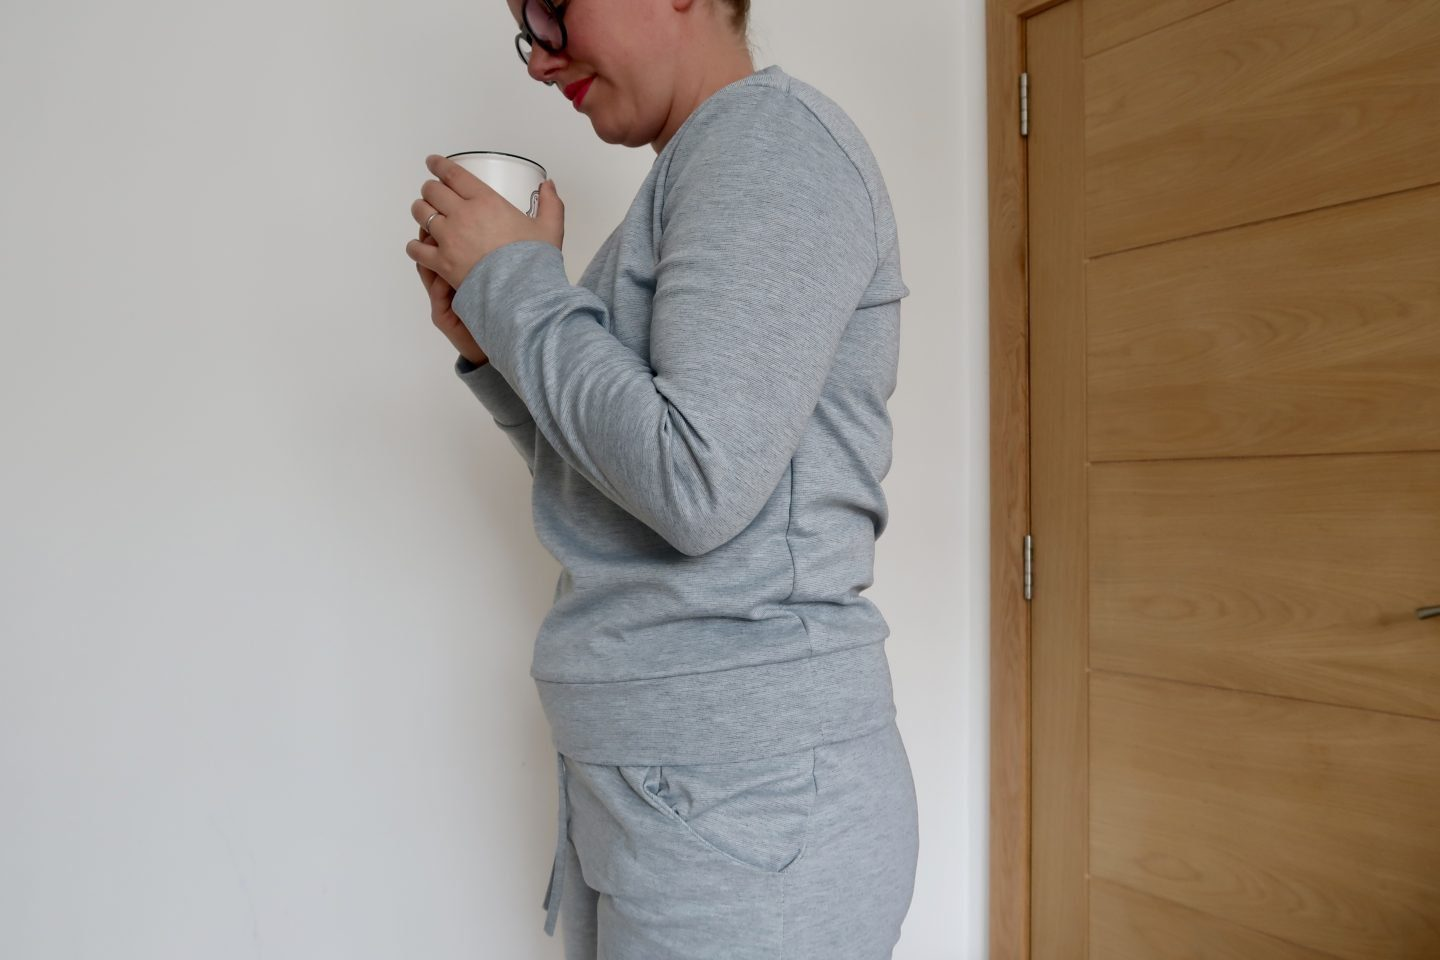 A woman wearing a grey tracksuit holding a mug with both hands